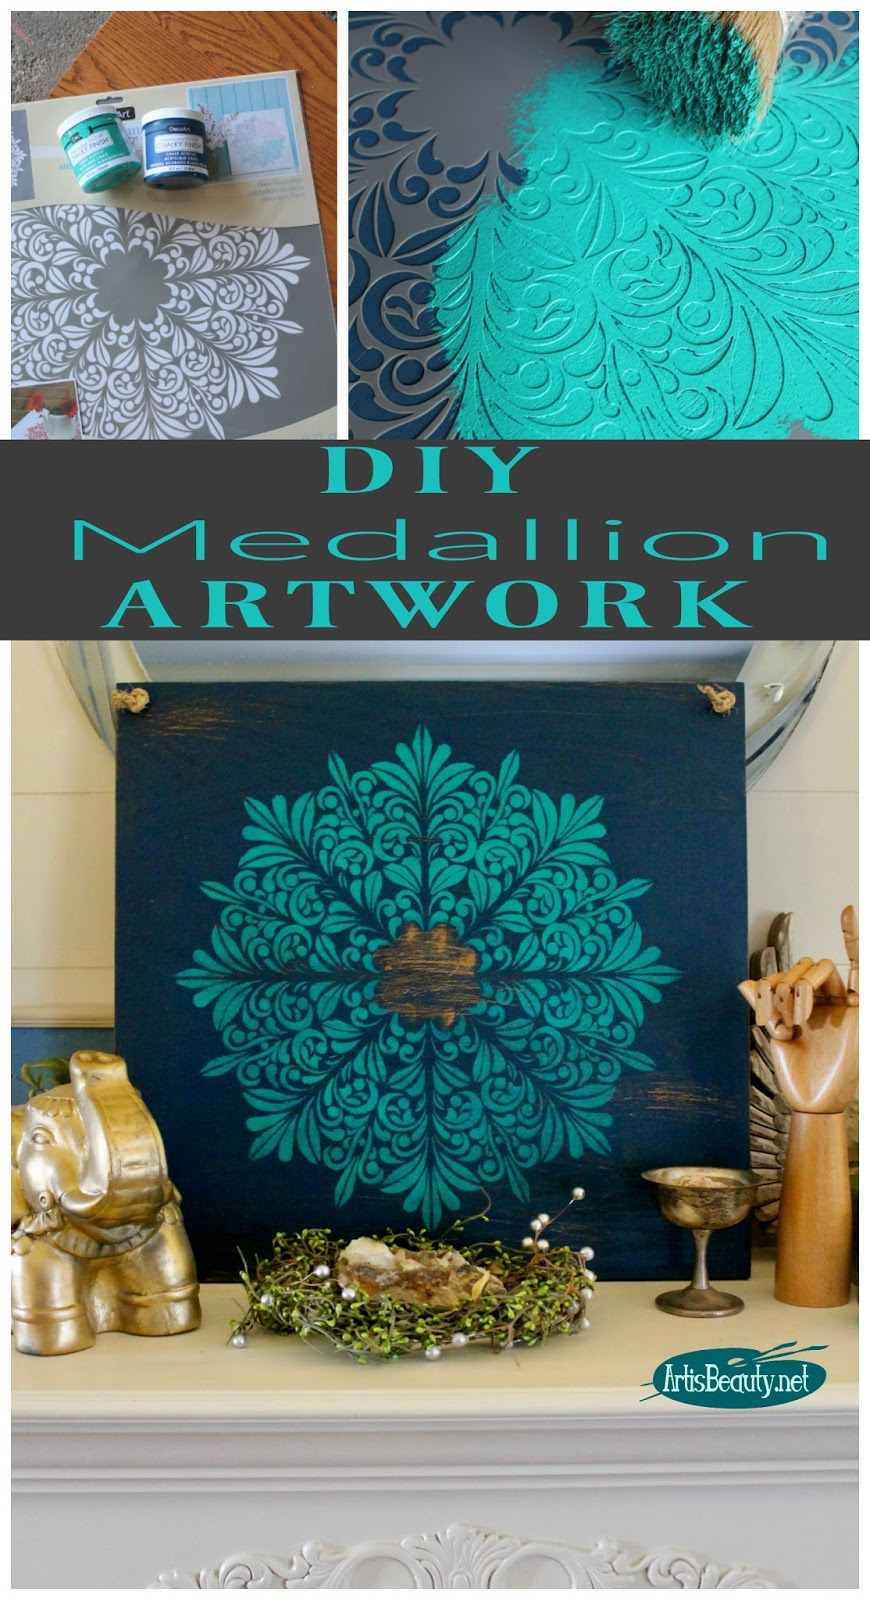 Art Is Beauty Diy Medallion Wall Art From An Old Shelf Home Decorators Catalog Best Ideas of Home Decor and Design [homedecoratorscatalog.us]